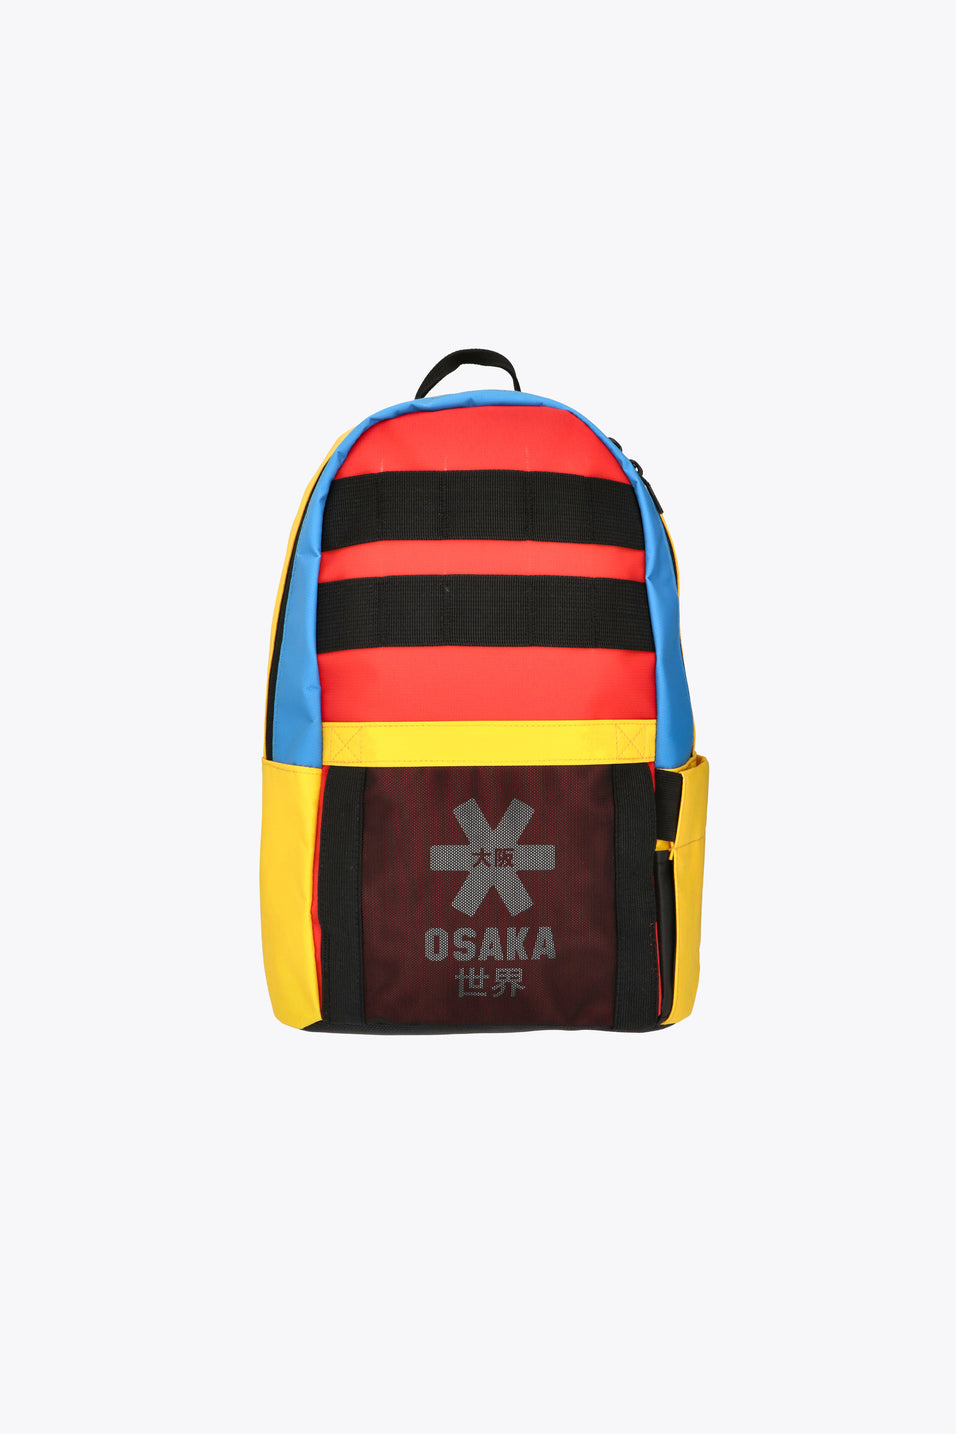 osaka backpack for kids